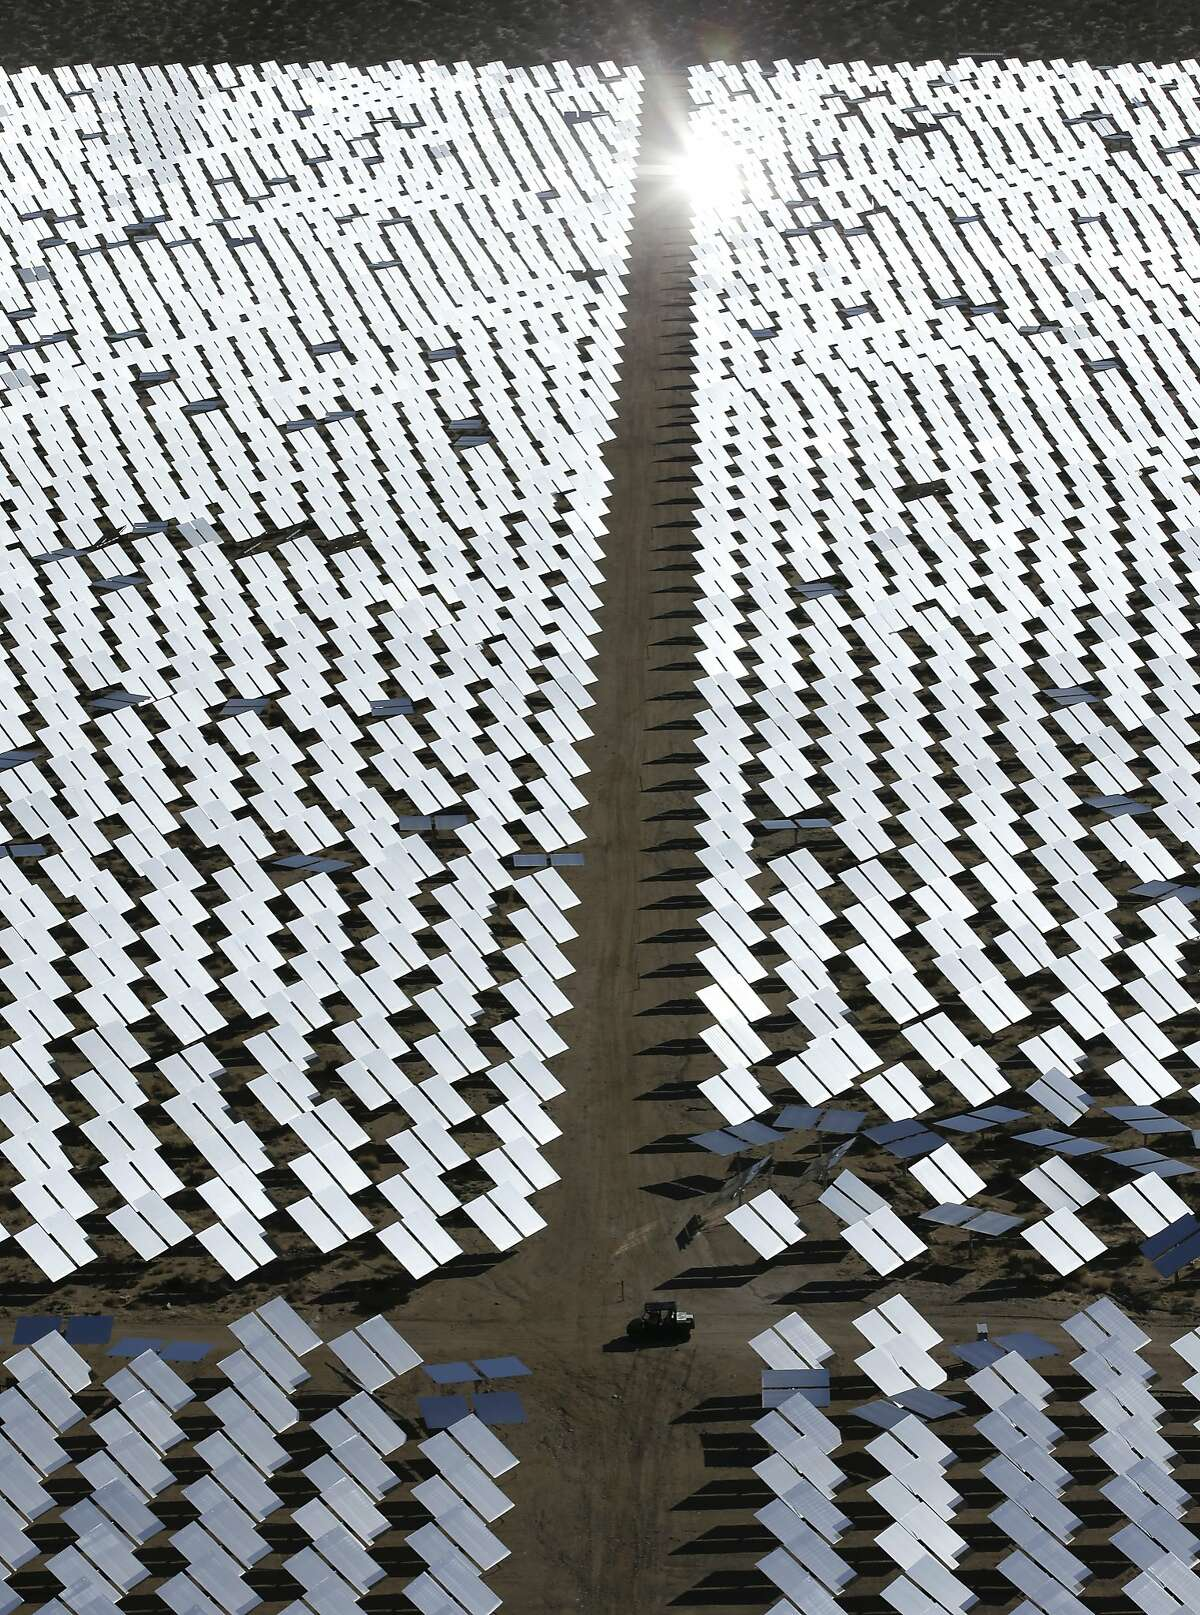 Some of the 300,000 computer-controlled mirrors, each about 7 feet high and 10 feet wide, reflect sunlight to boilers that sit on 459-foot towers. The sun's power is used to heat water in the boilers' tubes and make steam, which in turn drives turbines to create electricity Tuesday, Feb. 11, 2014 in Primm, Nev. The Ivanpah Solar Electric Generating System, sprawling across roughly 5 square miles of federal land near the California-Nevada border, will be opened formally Thursday after years of regulatory and legal tangles.